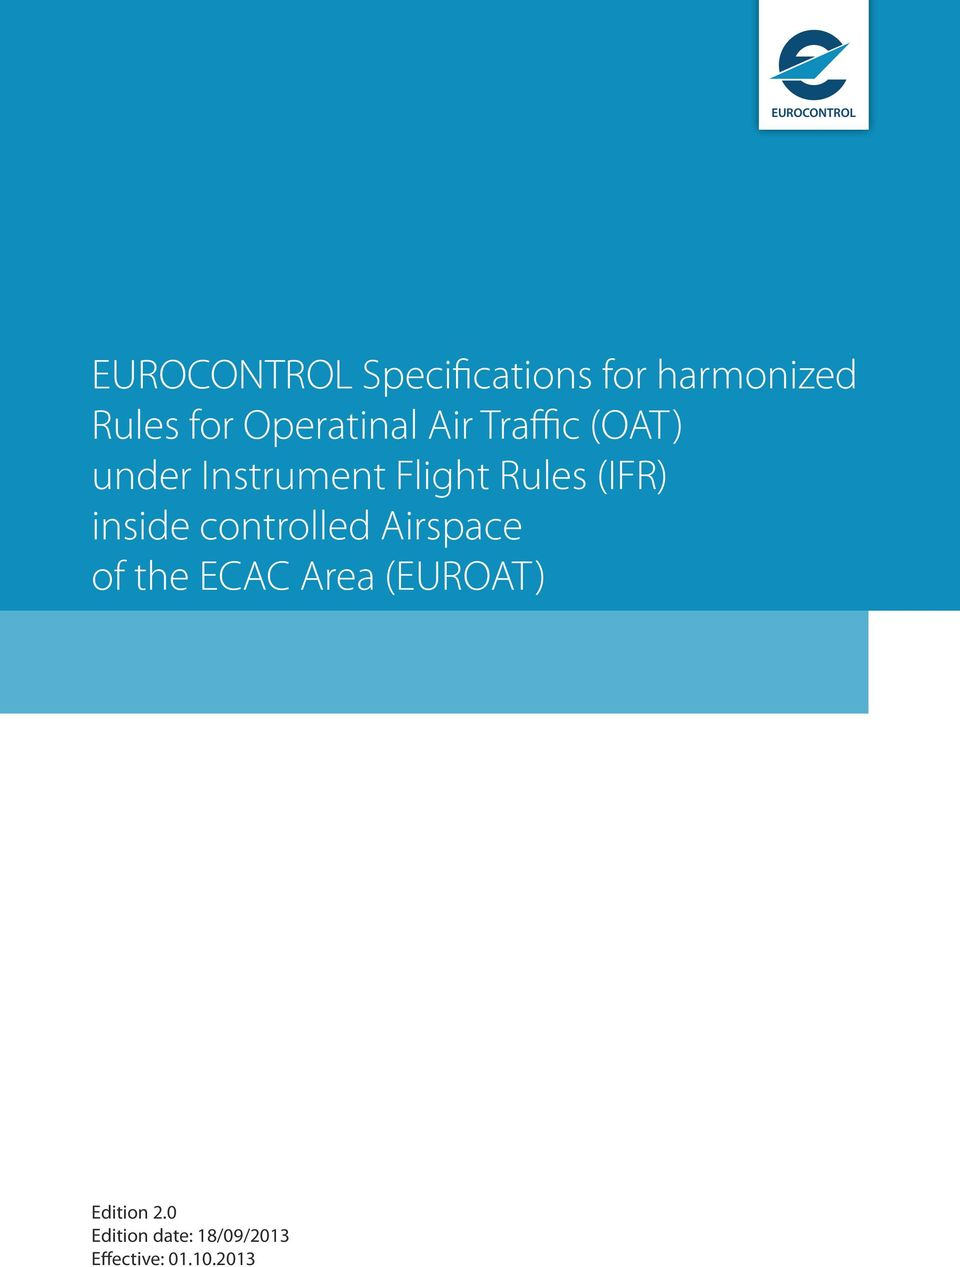 Rules (IFR) inside controlled Airspace of the ECAC Area